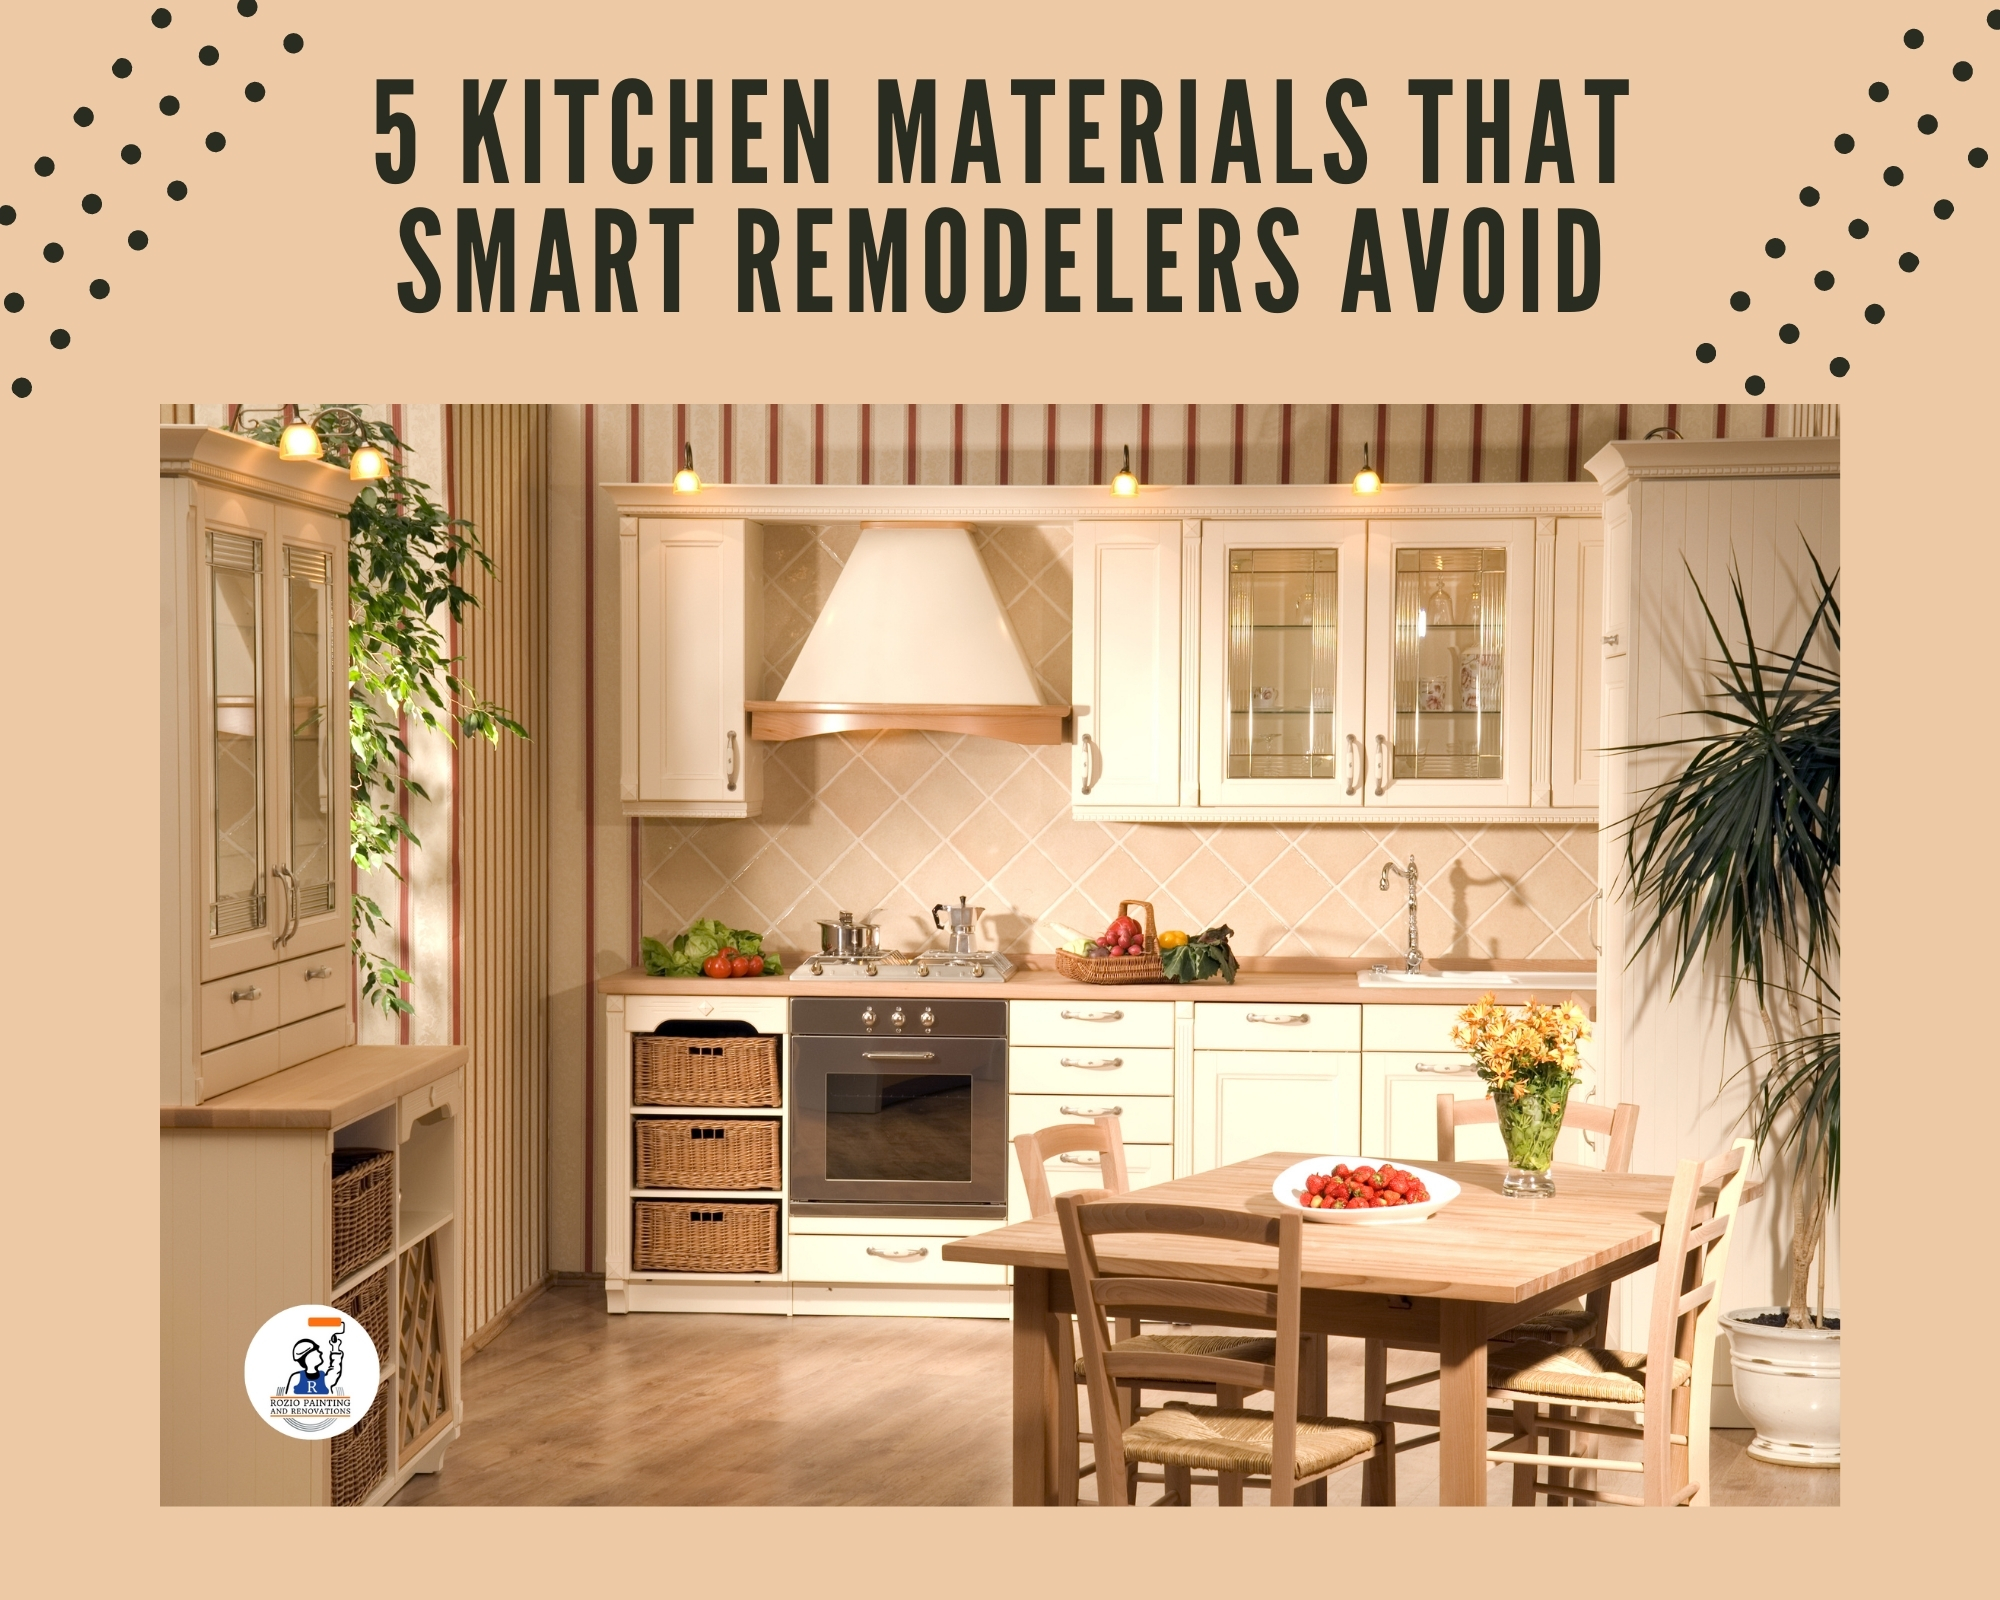 5 Kitchen Materials That Smart Remodelers Avoid